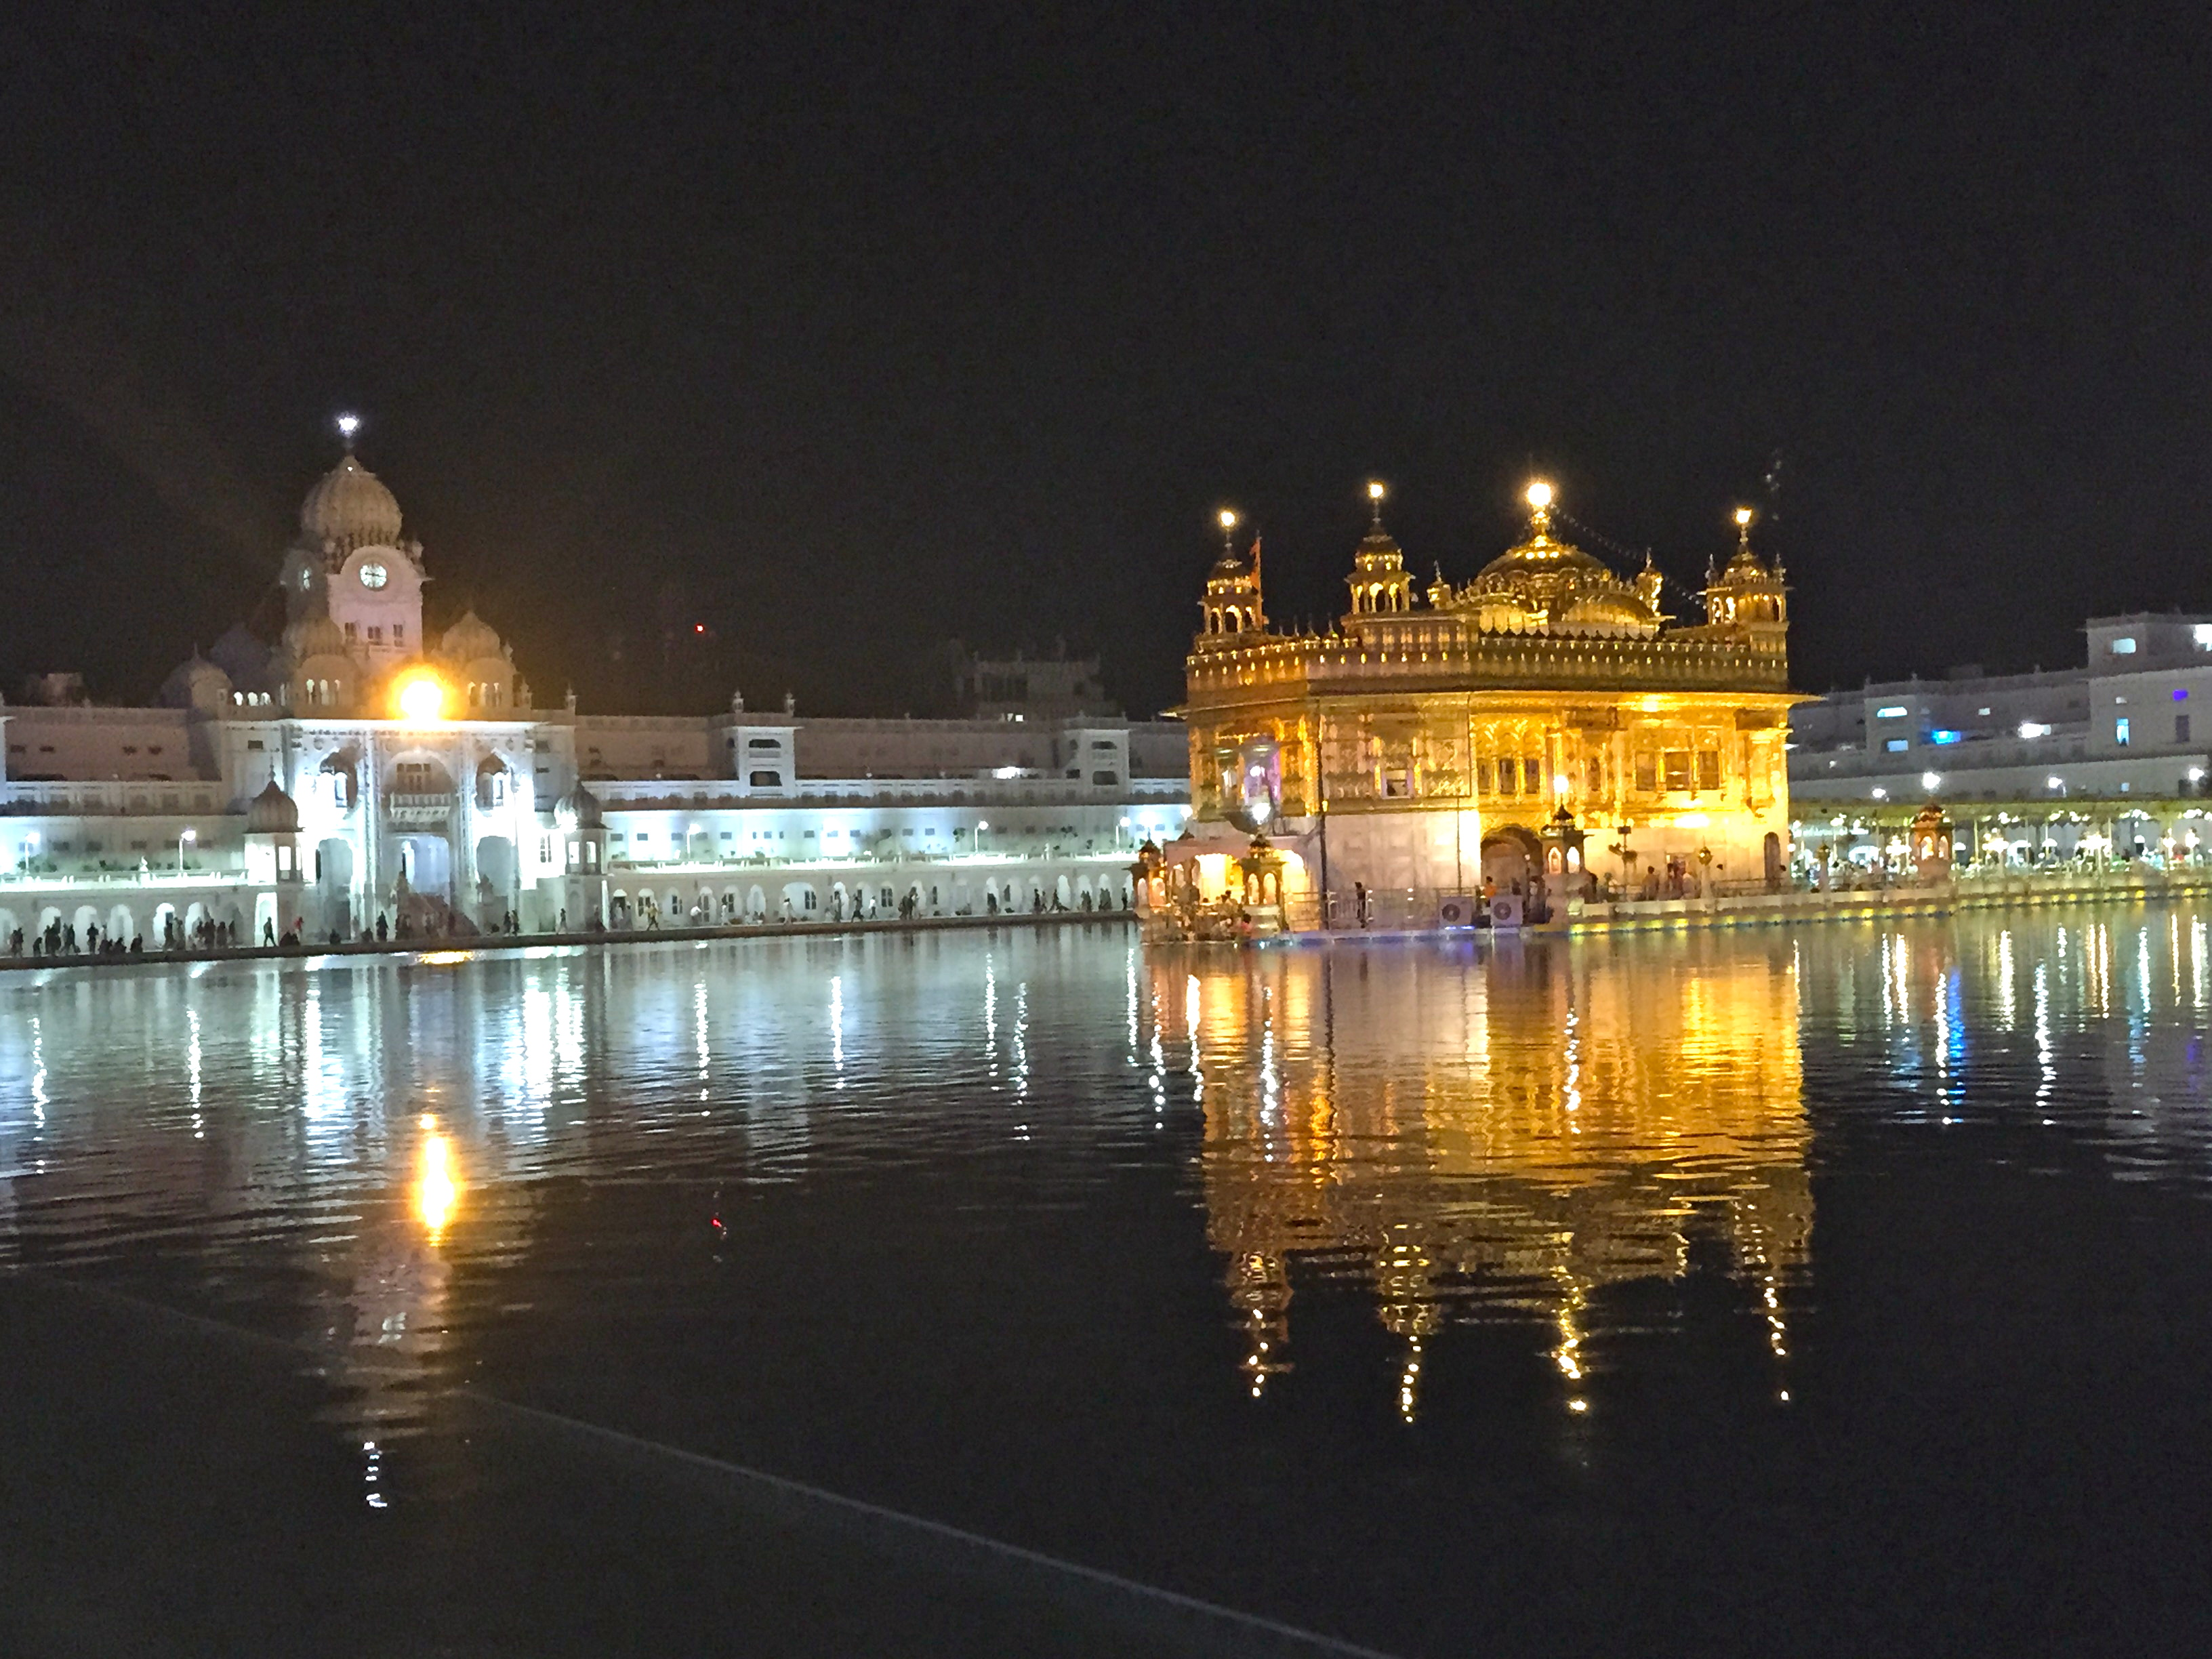 the golden temple - among the most positive places in the world